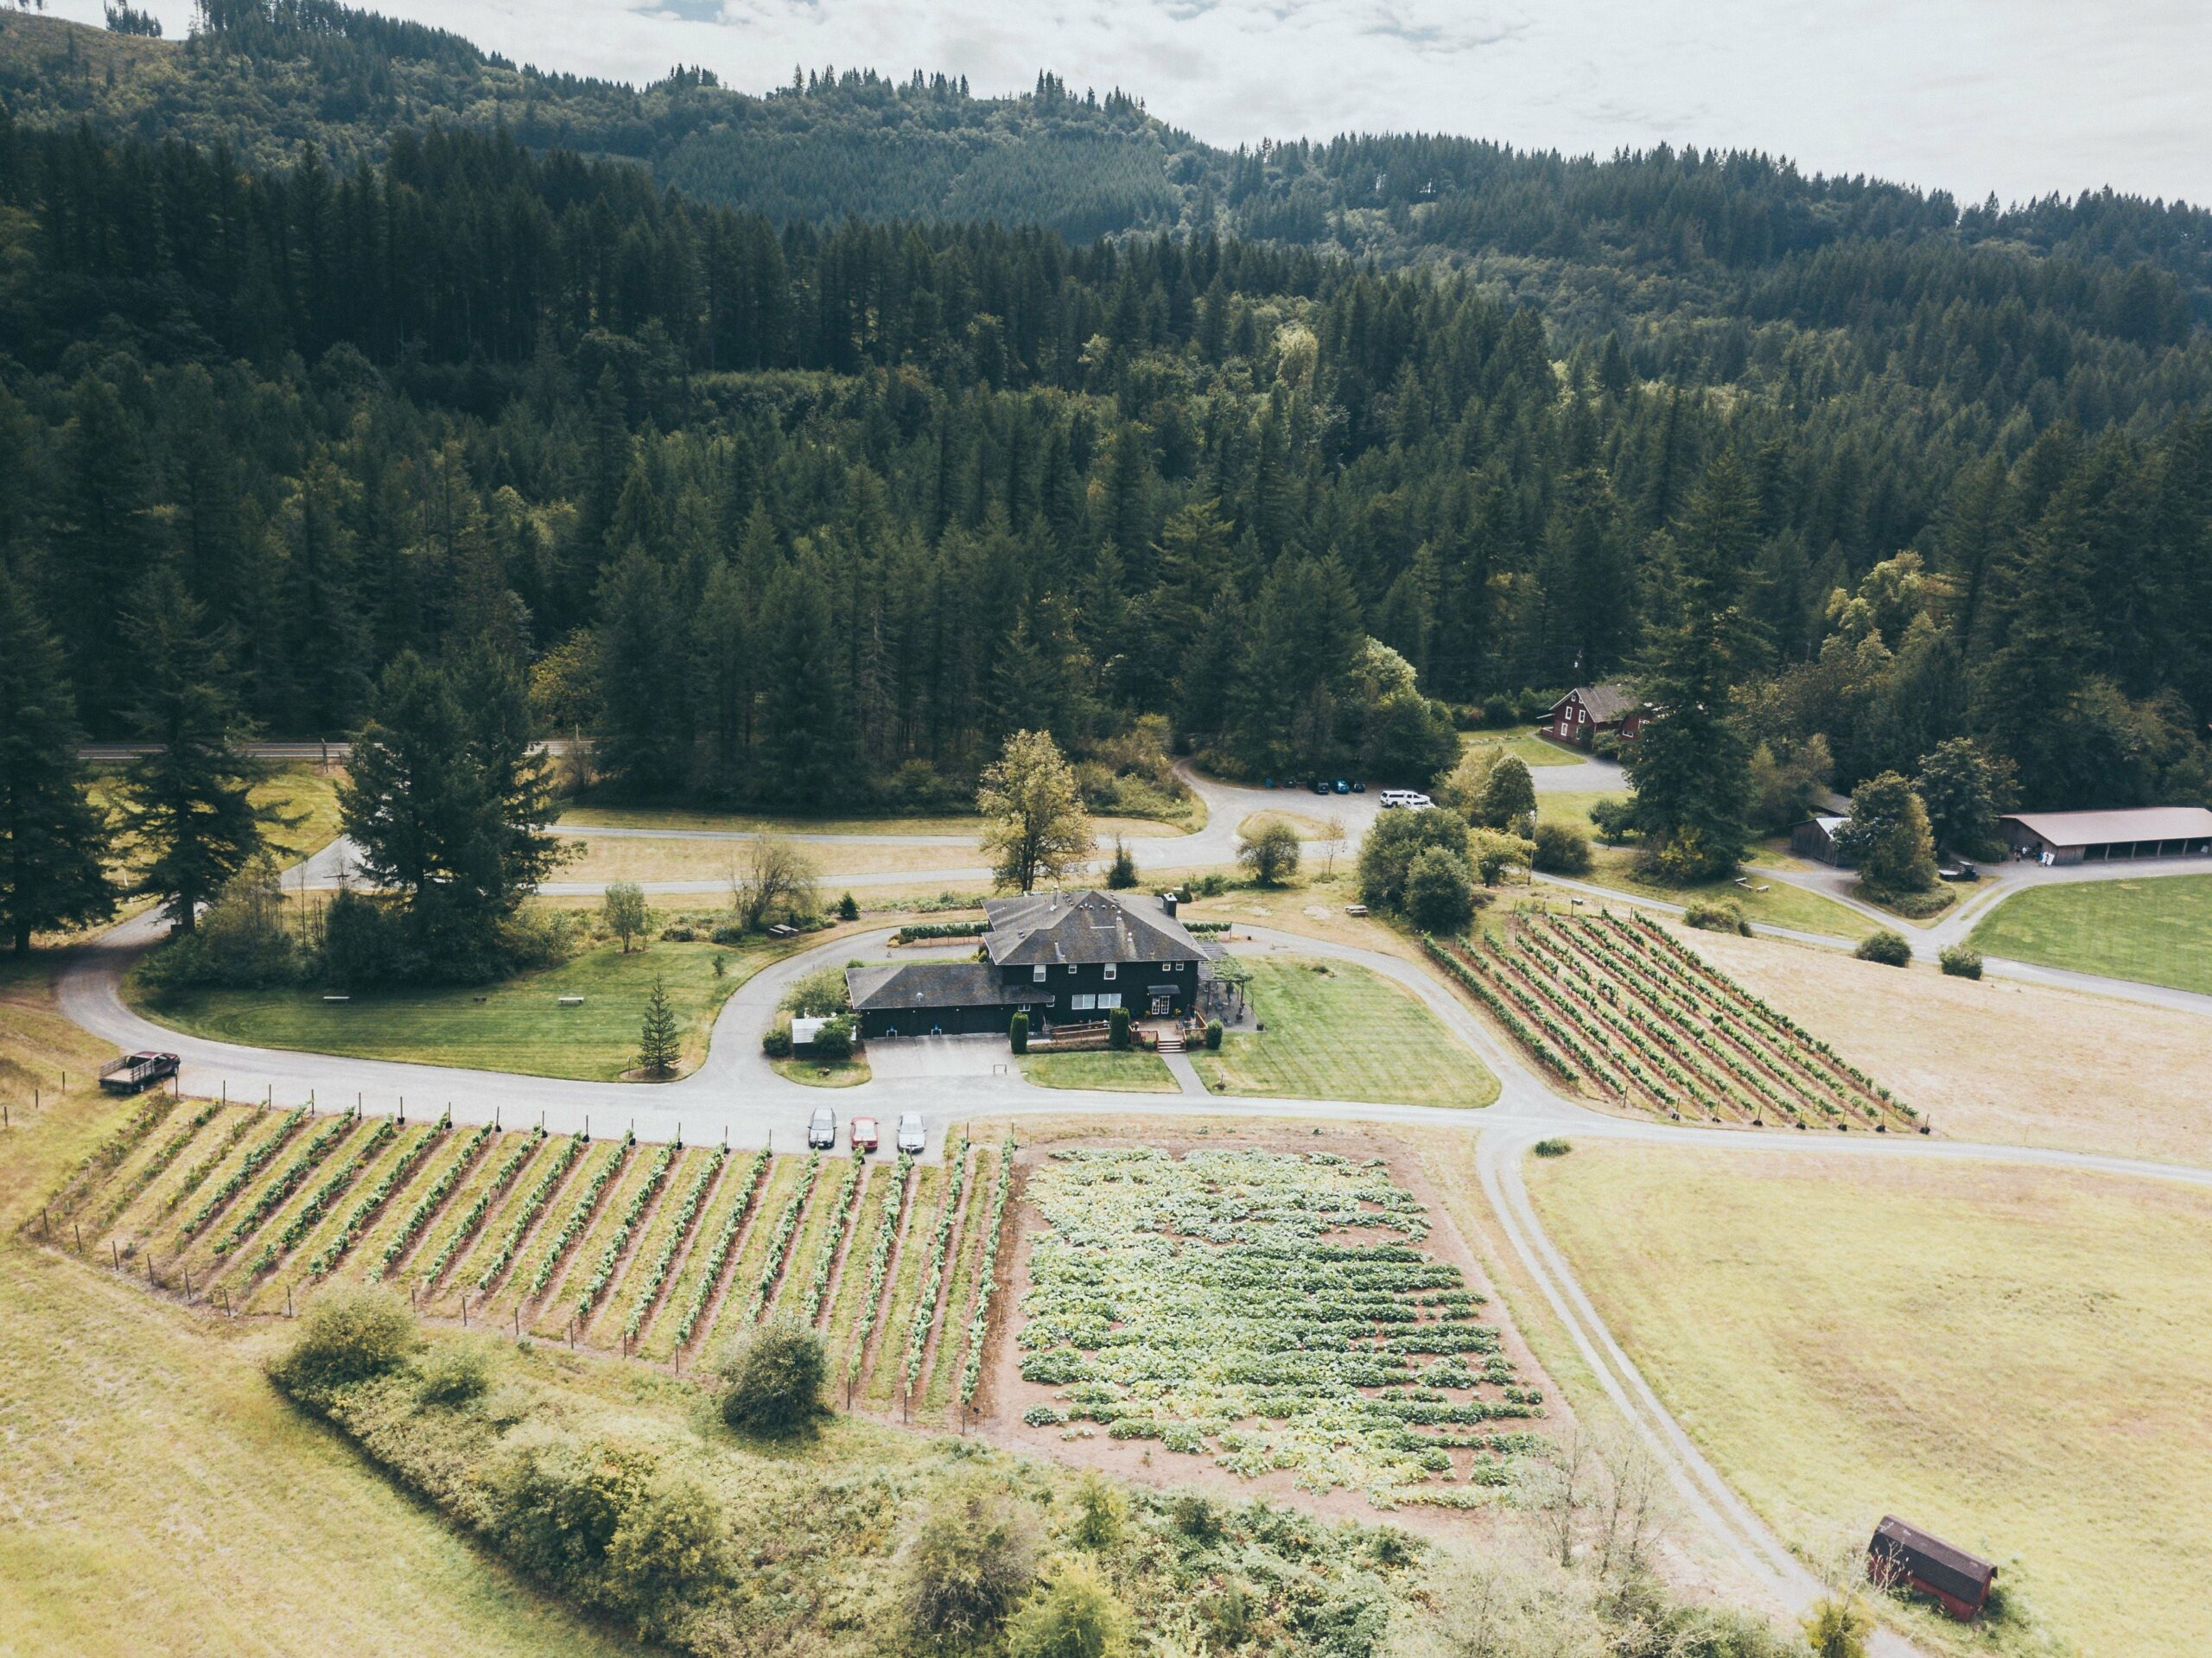 Aerial Landscape of Pomeroy Cellars Terrain featuring a Vintage House Woods and Wine Fields